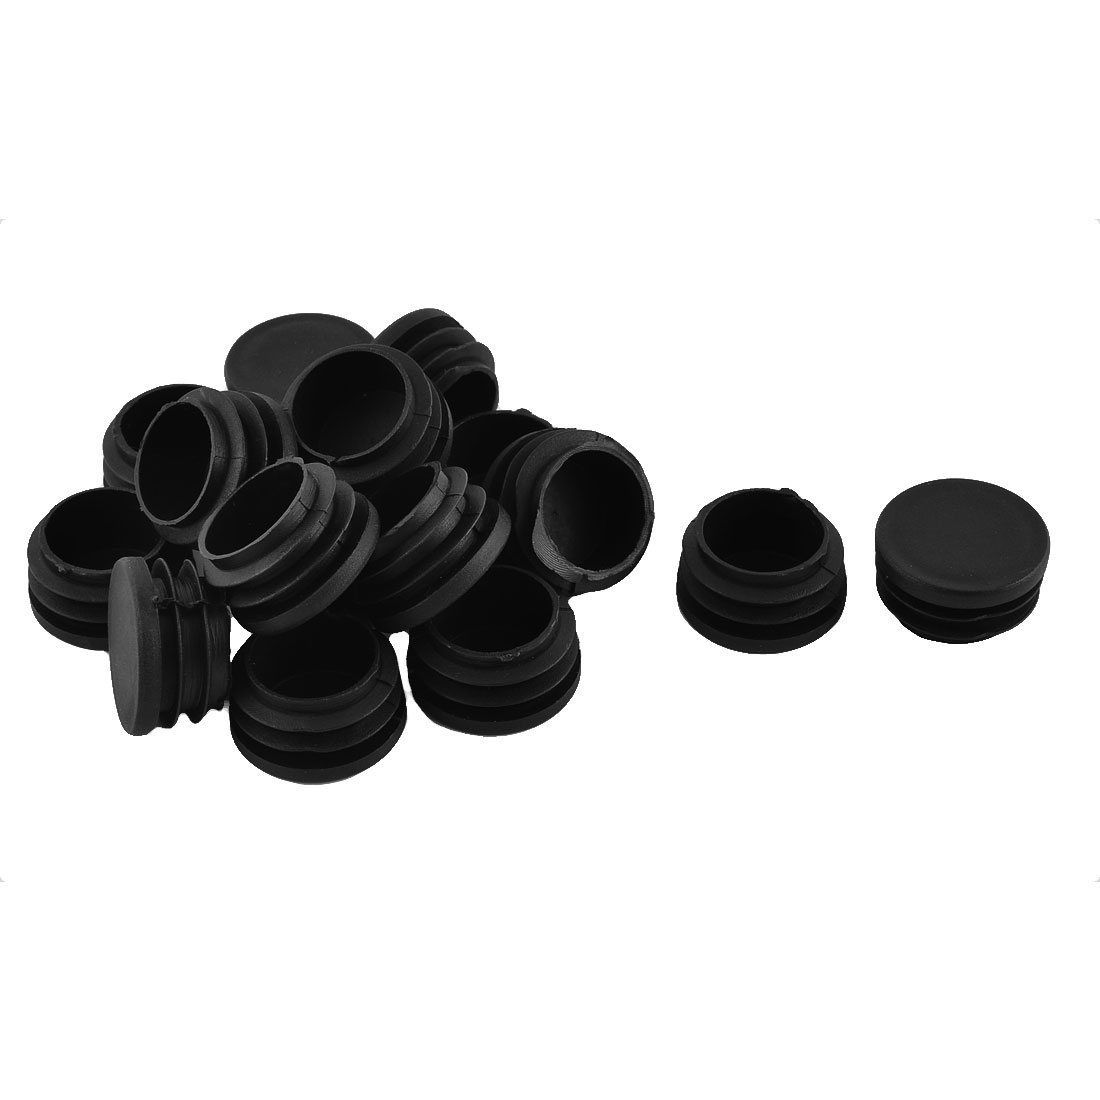 Table Desk Foot Plastic Round Tube Insert End Cap Cover Black 32mm Dia 16pcs